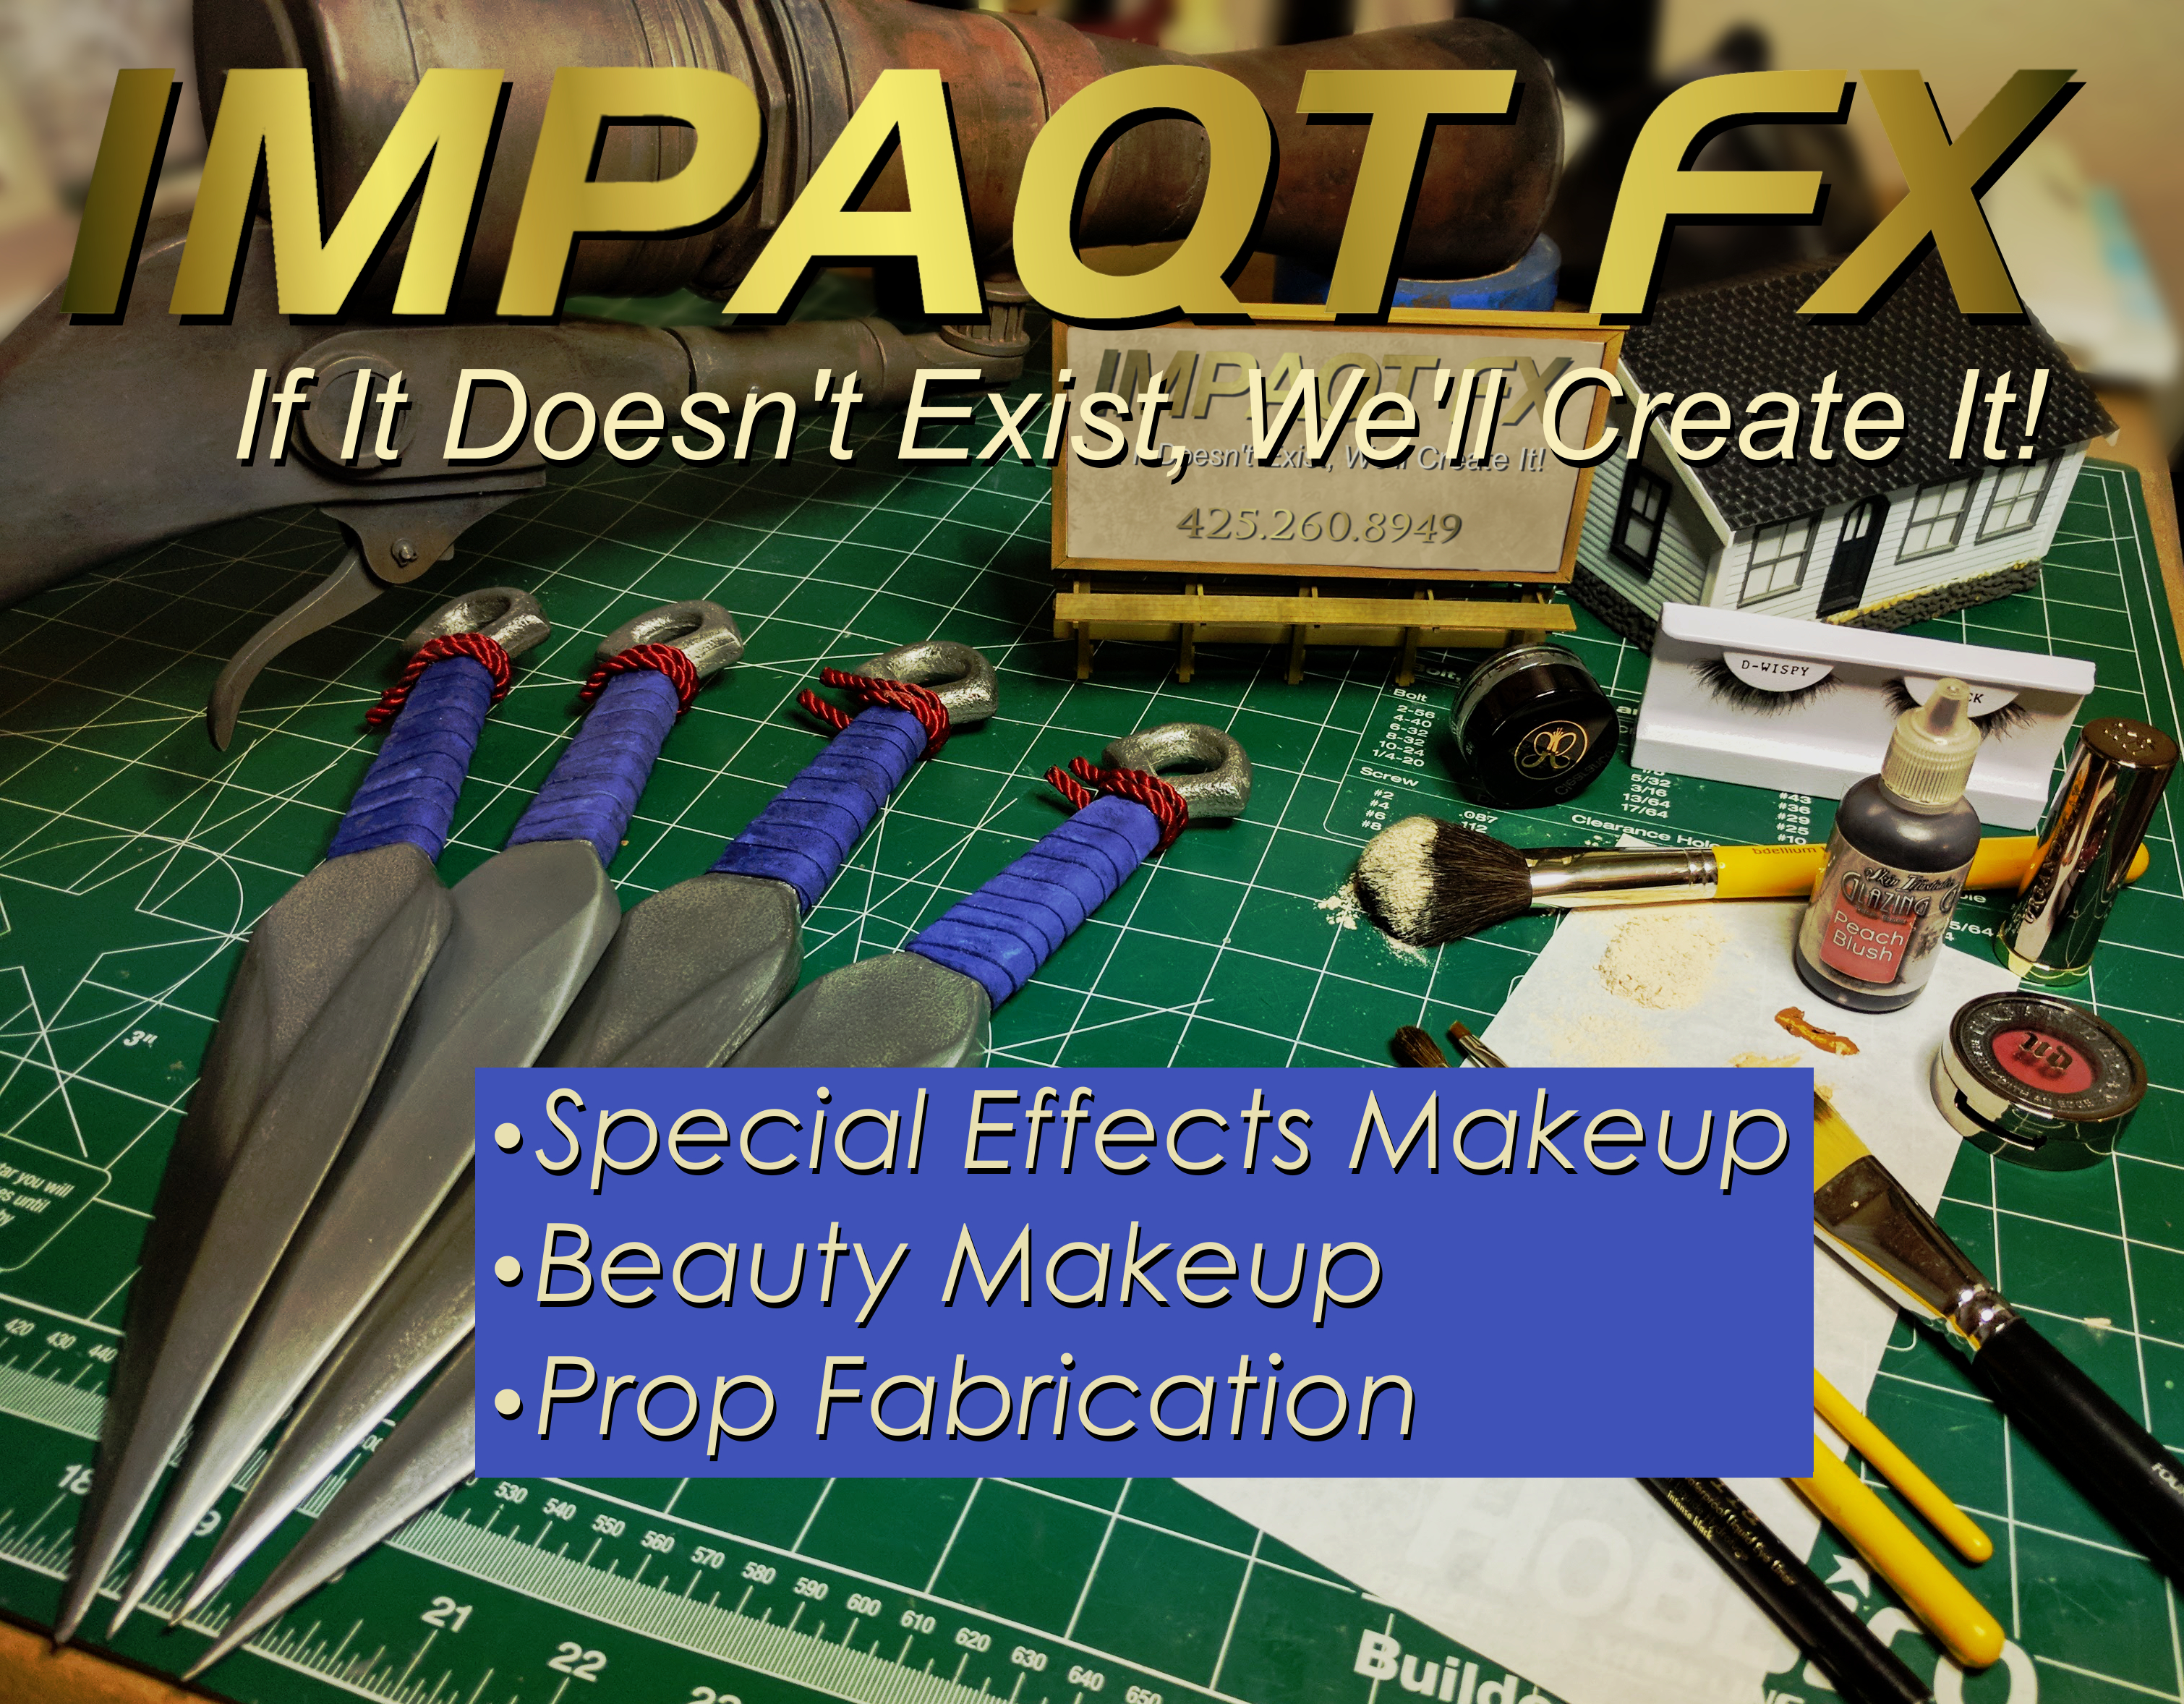 ImpaQt FX Props and Makeup Home Page